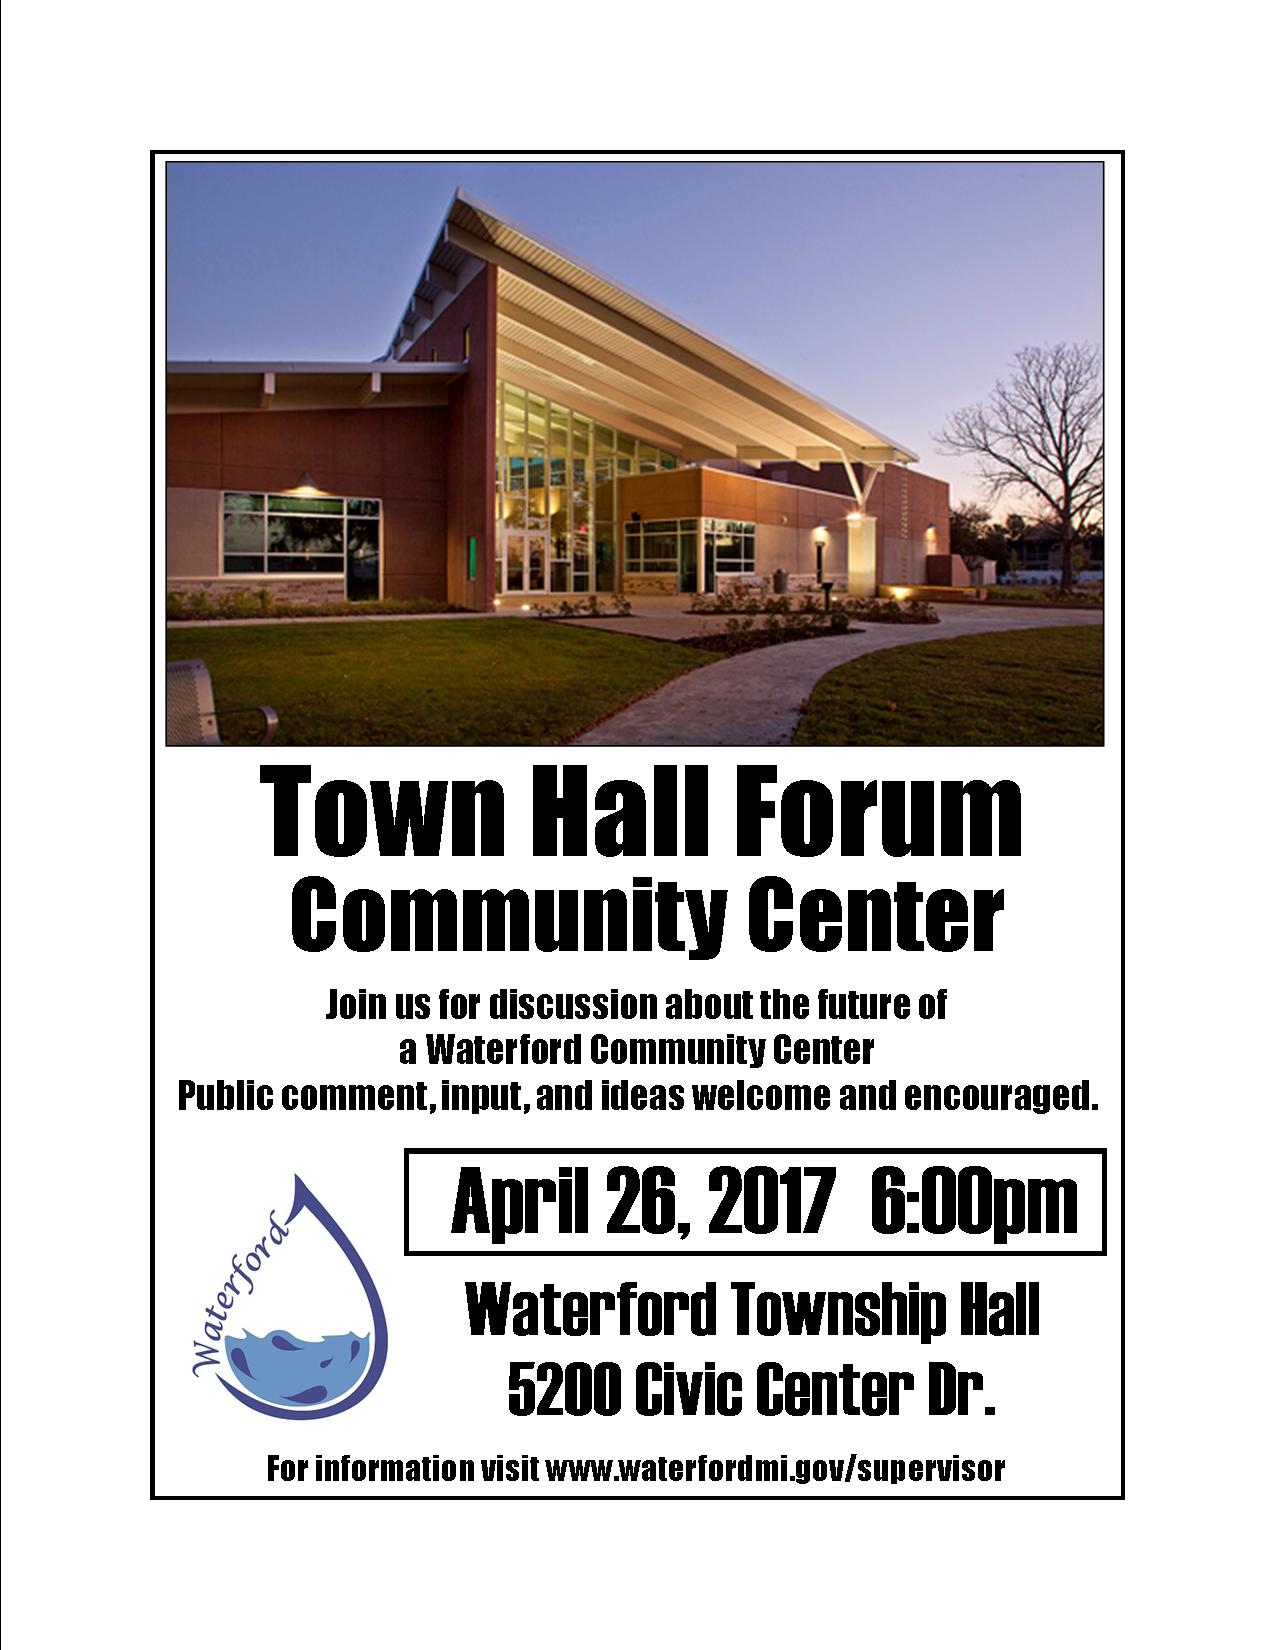 Town Hall Forum - community center